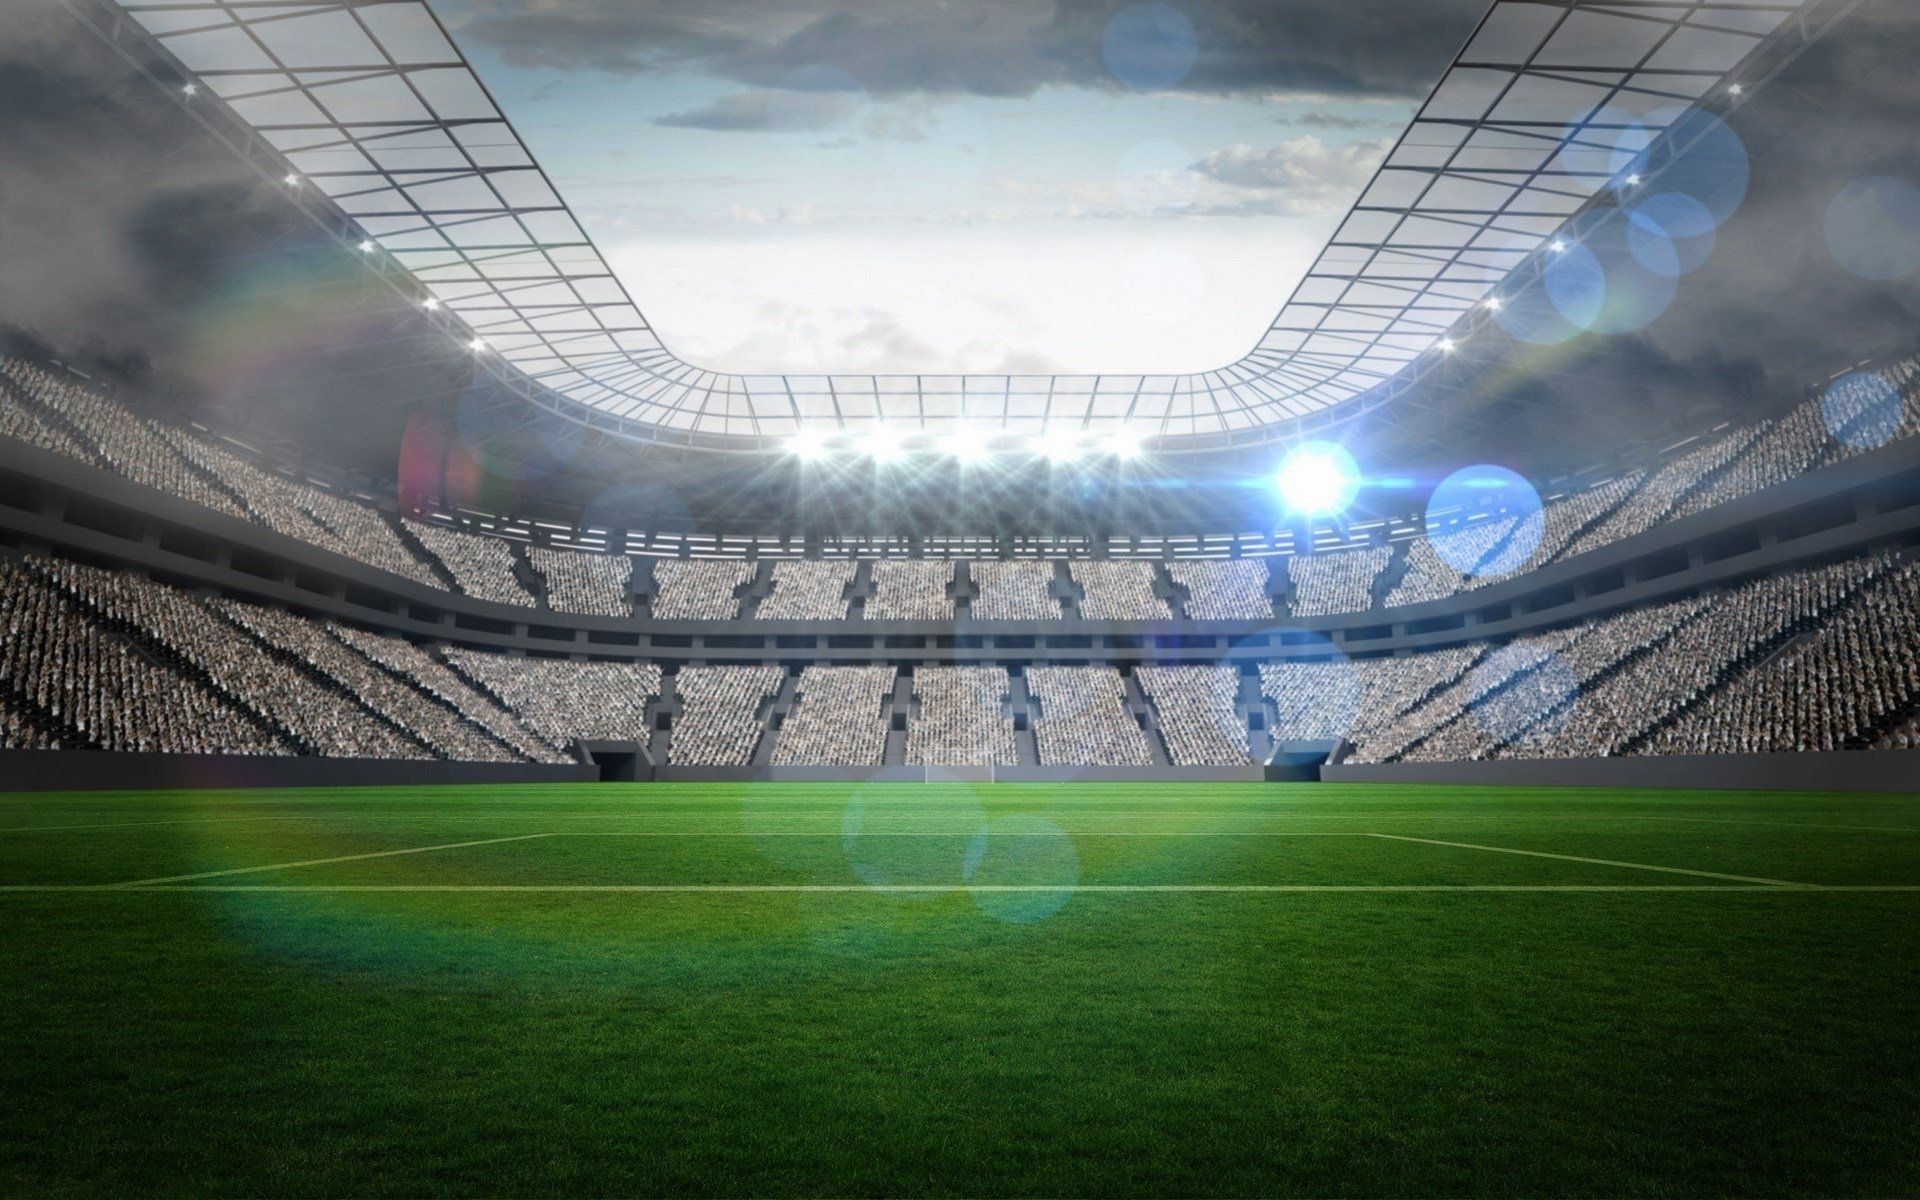 52 stadium hd wallpapers | background images - wallpaper abyss